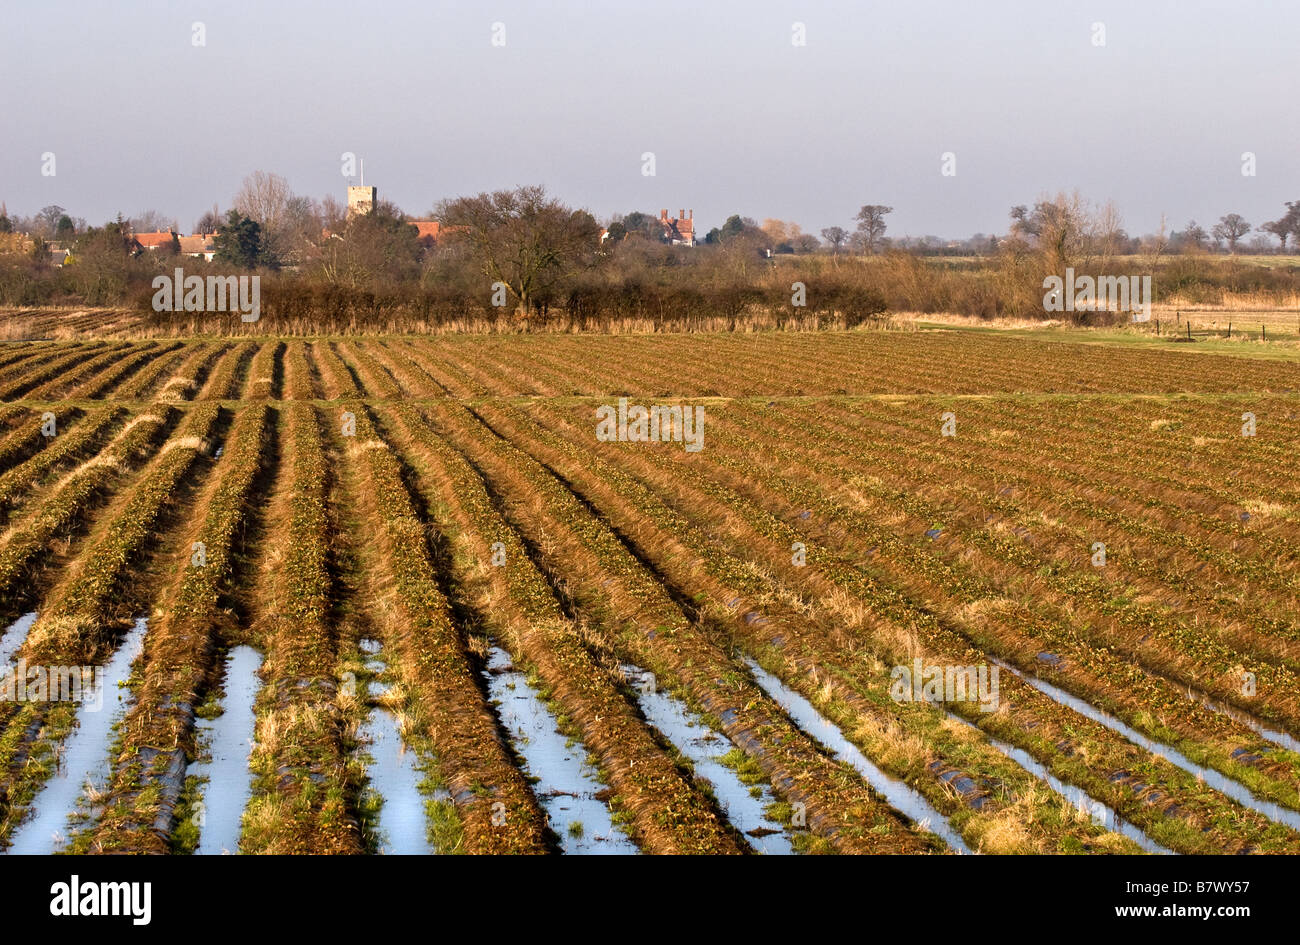 Waterlogged furrows in a field Stock Photo